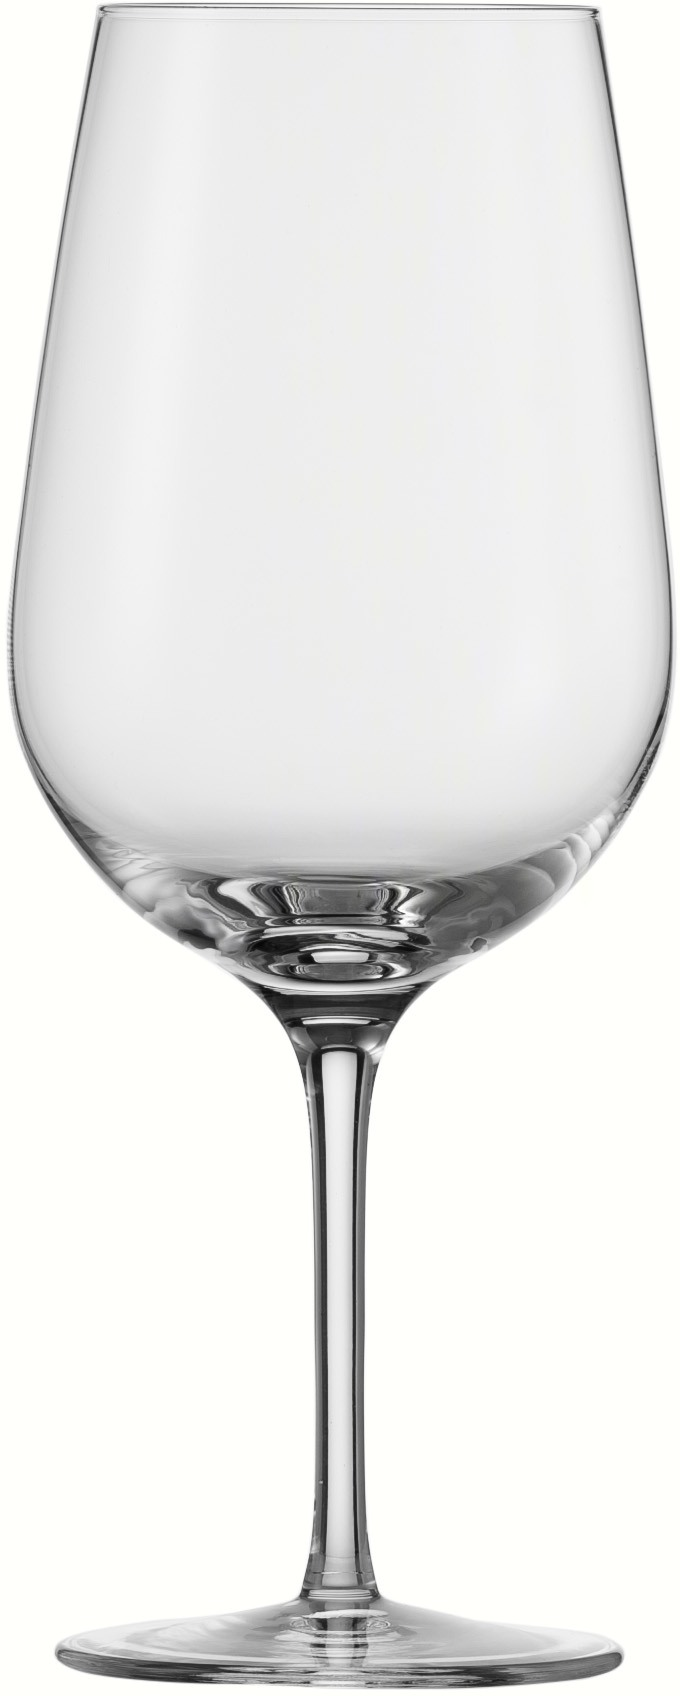 Vinezza SP Bordeaux Glass (Set of 2) by Eisch Products